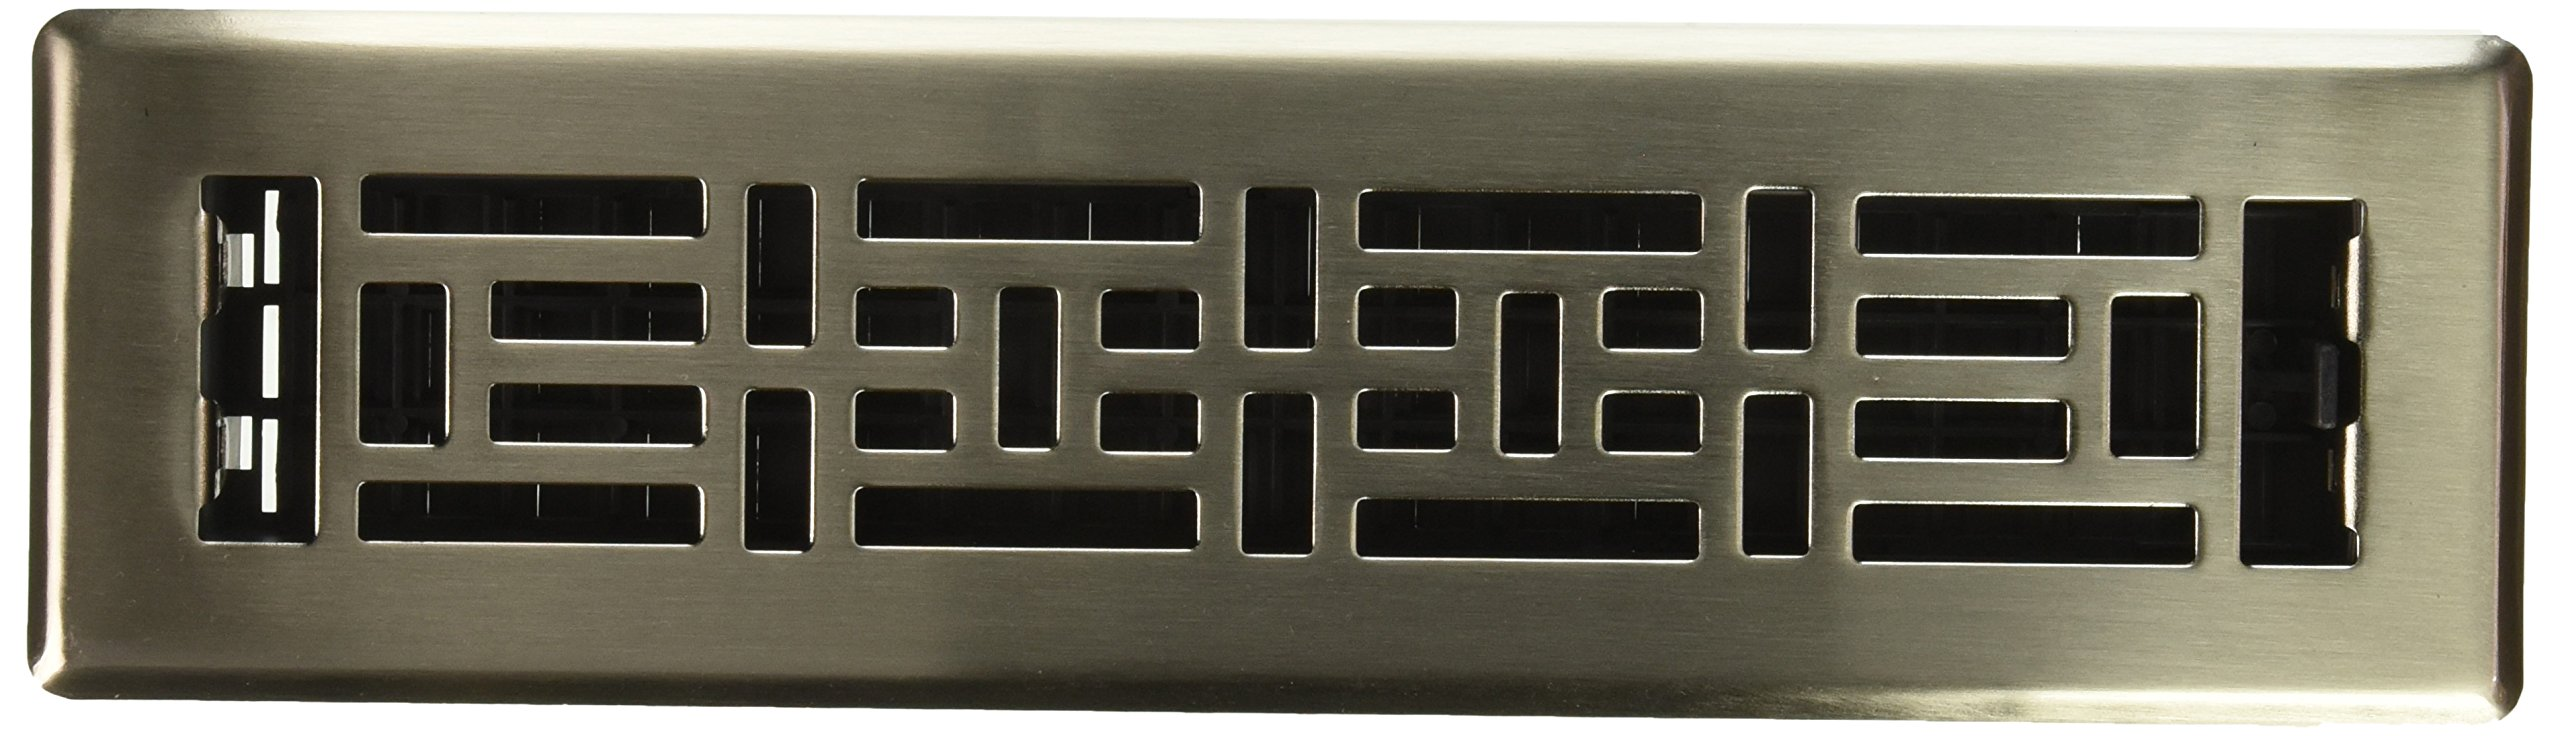 Decor Grates AJH212-NKL 2-Inch by 12-Inch Oriental Floor Register, Brushed Nickel